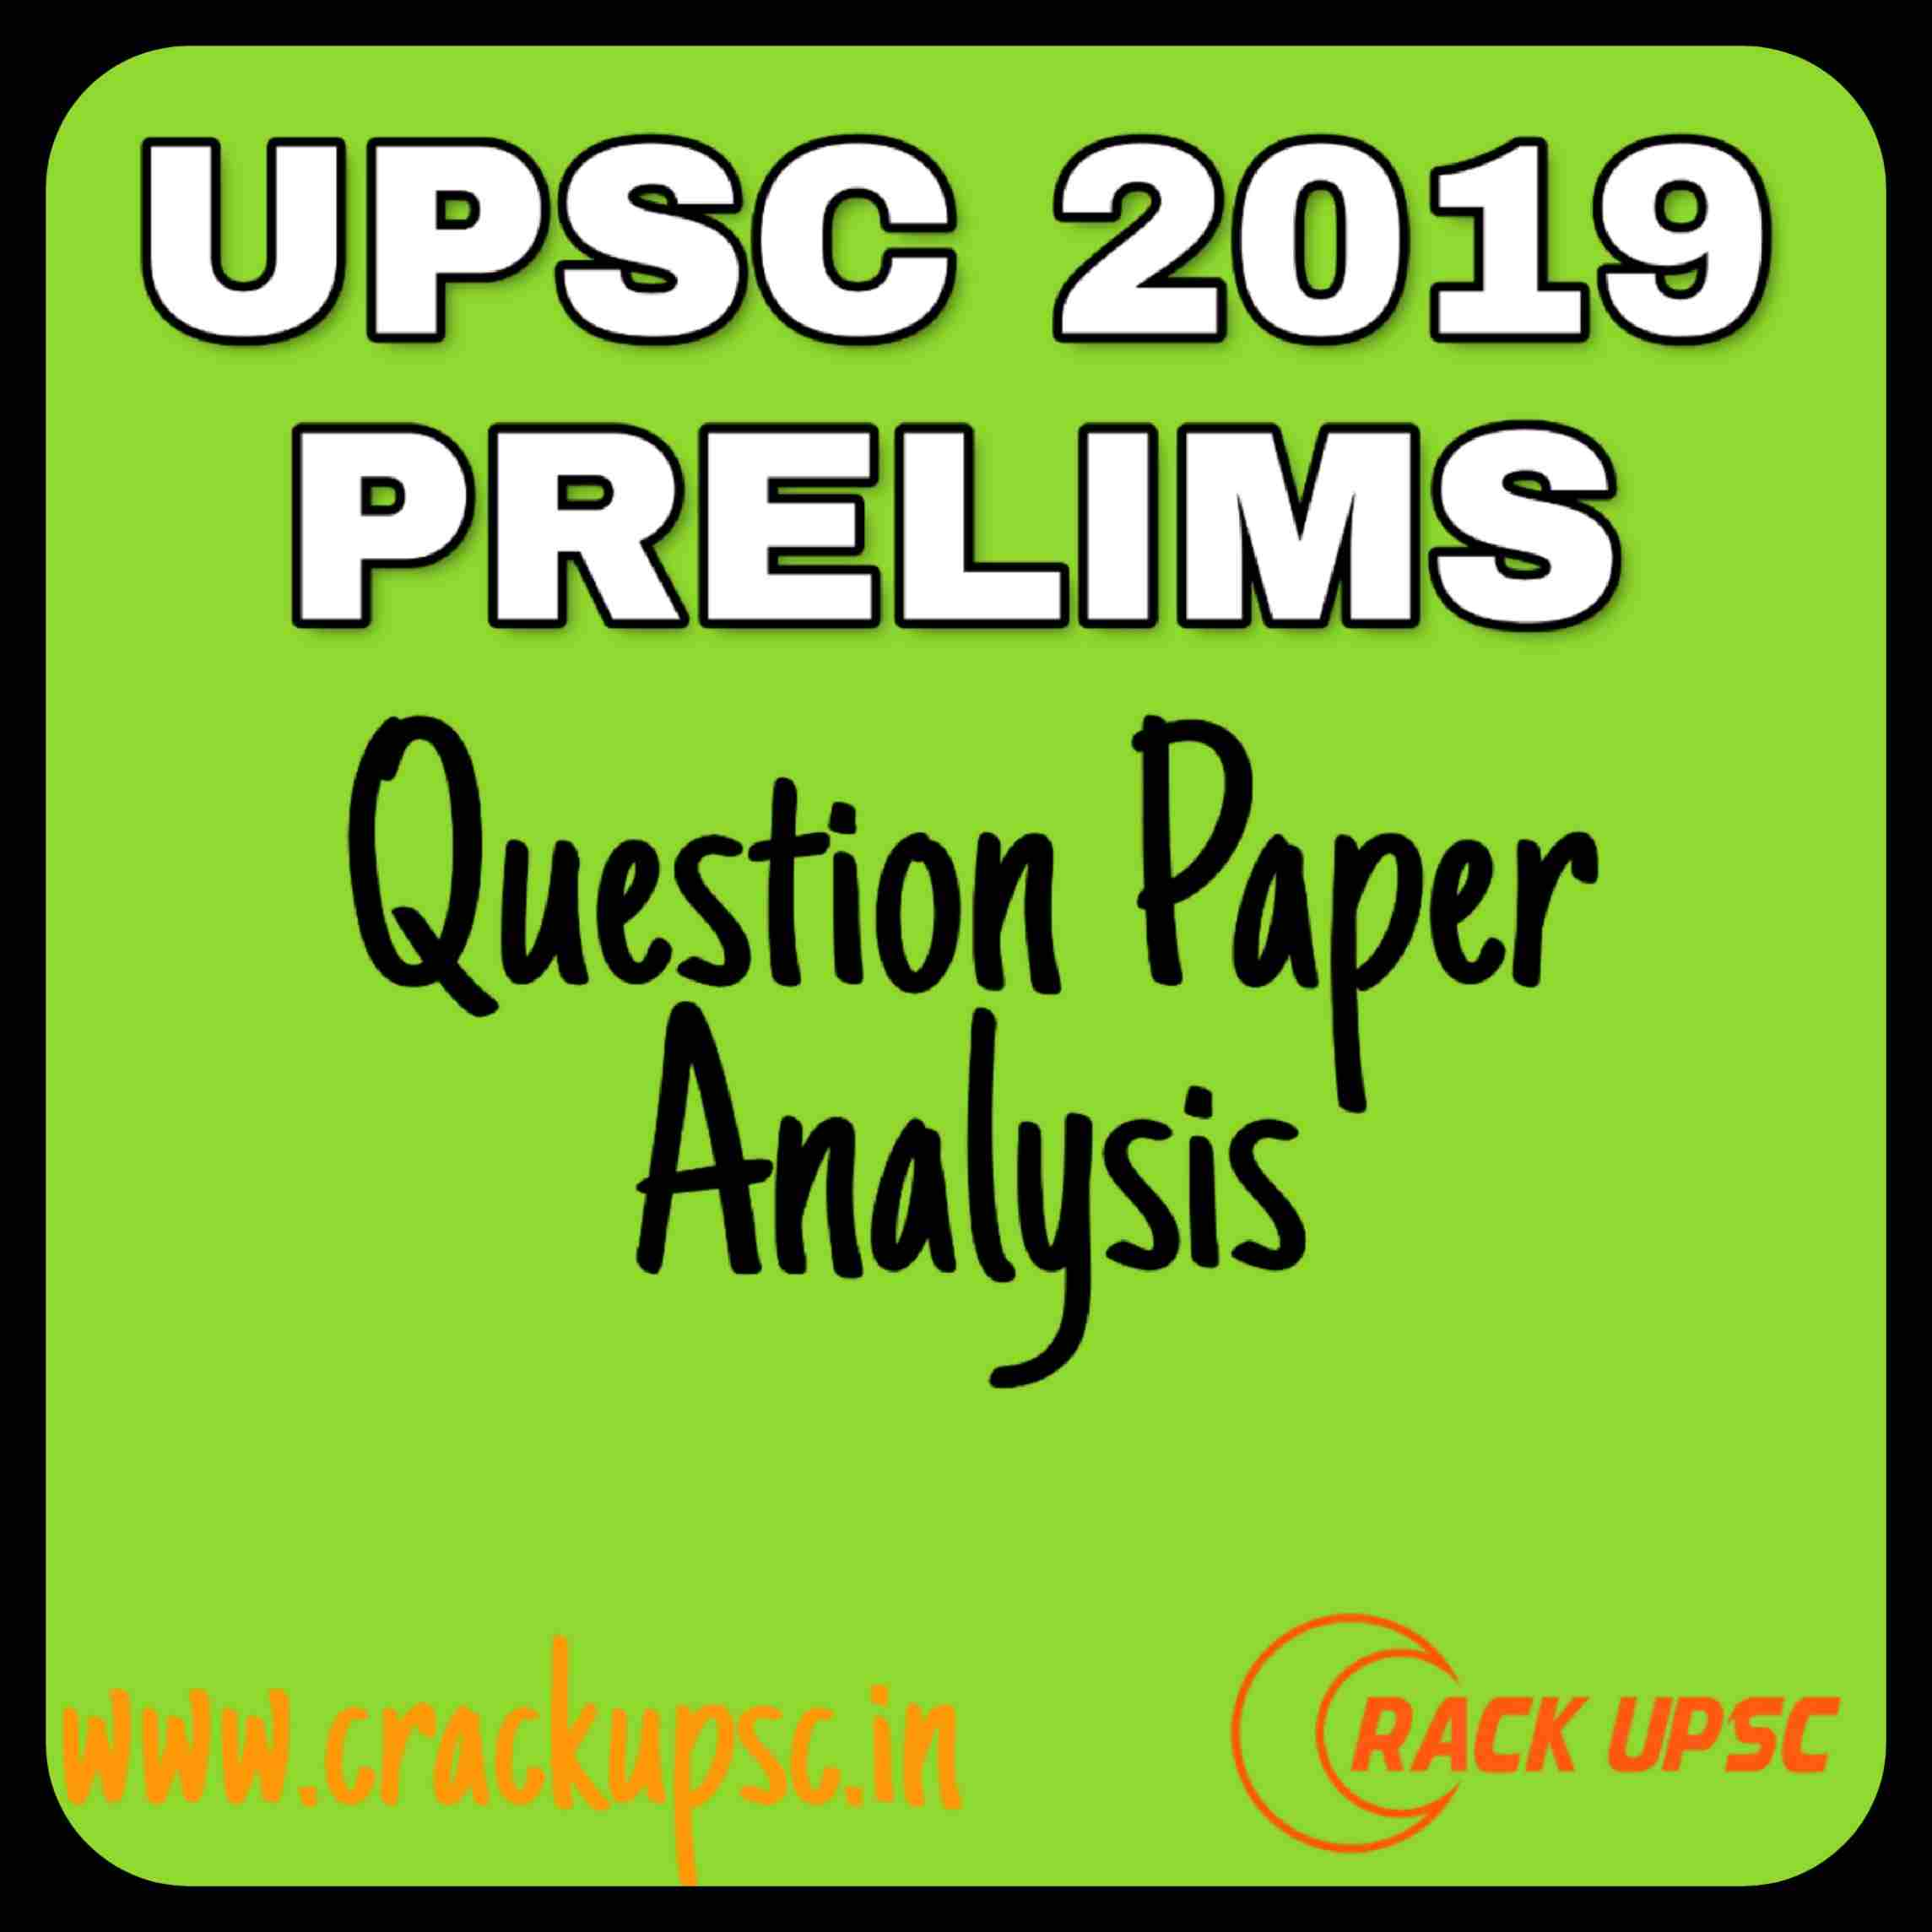 UPSC-2019-Prelims-Question-Paper-Analysis